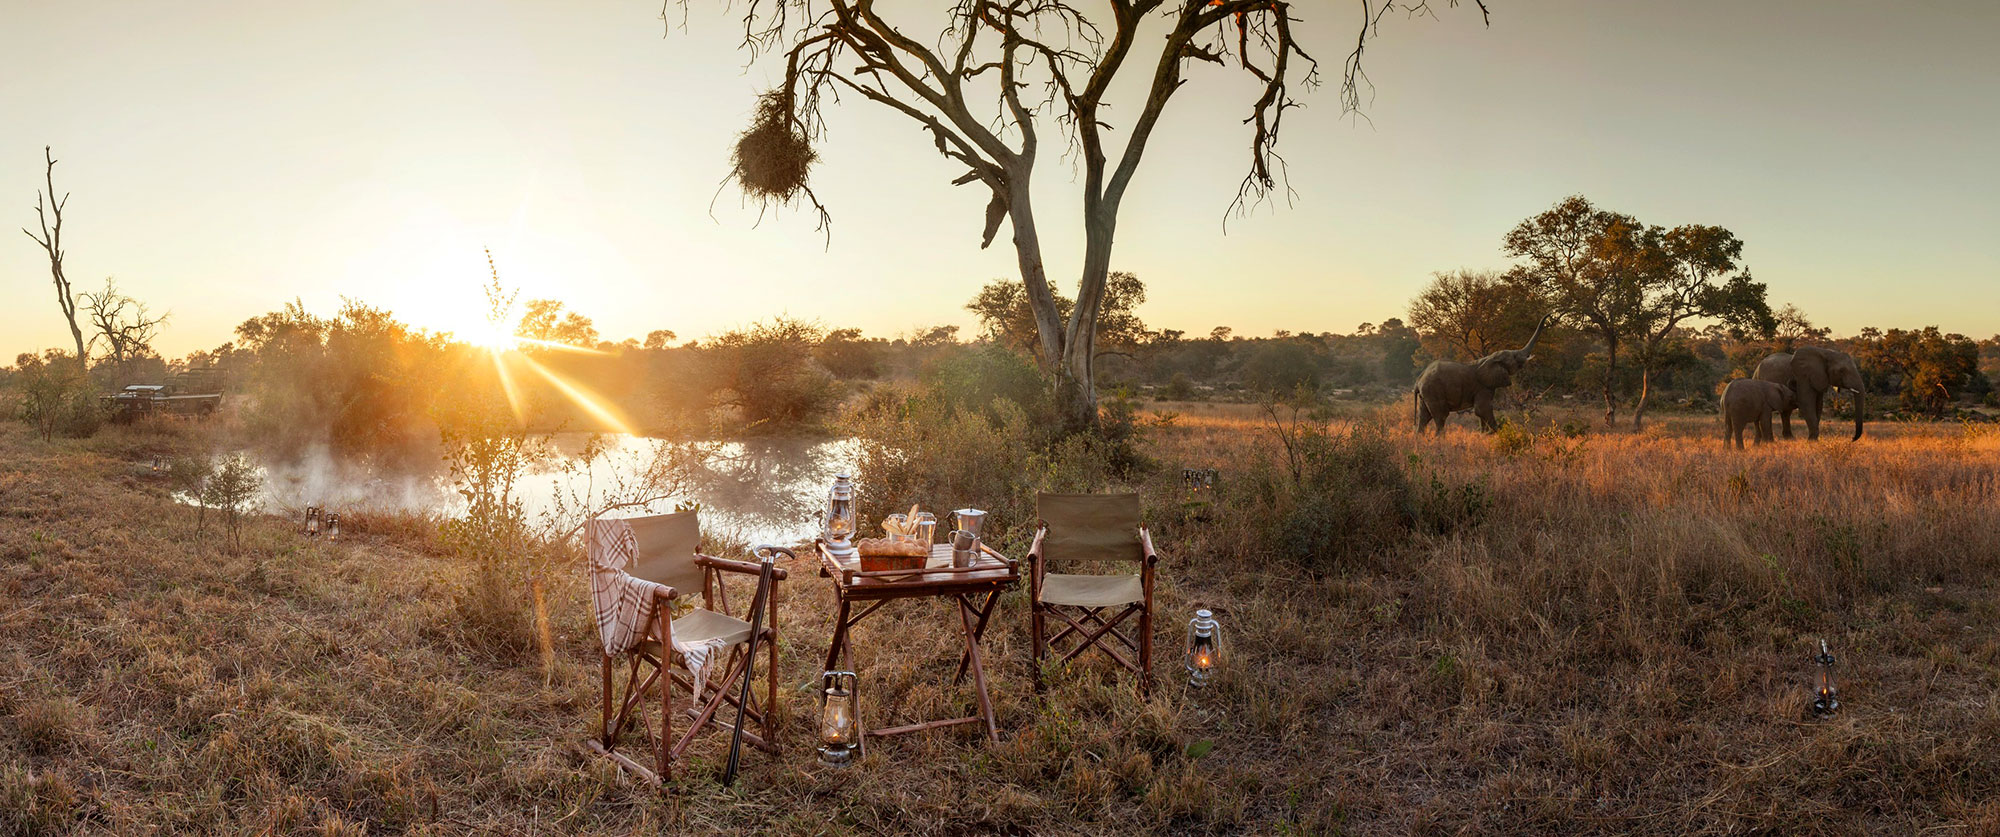 Luxury Safari Kruger National Park - Kings Camp Luxury Safari Lodge in Timbavati